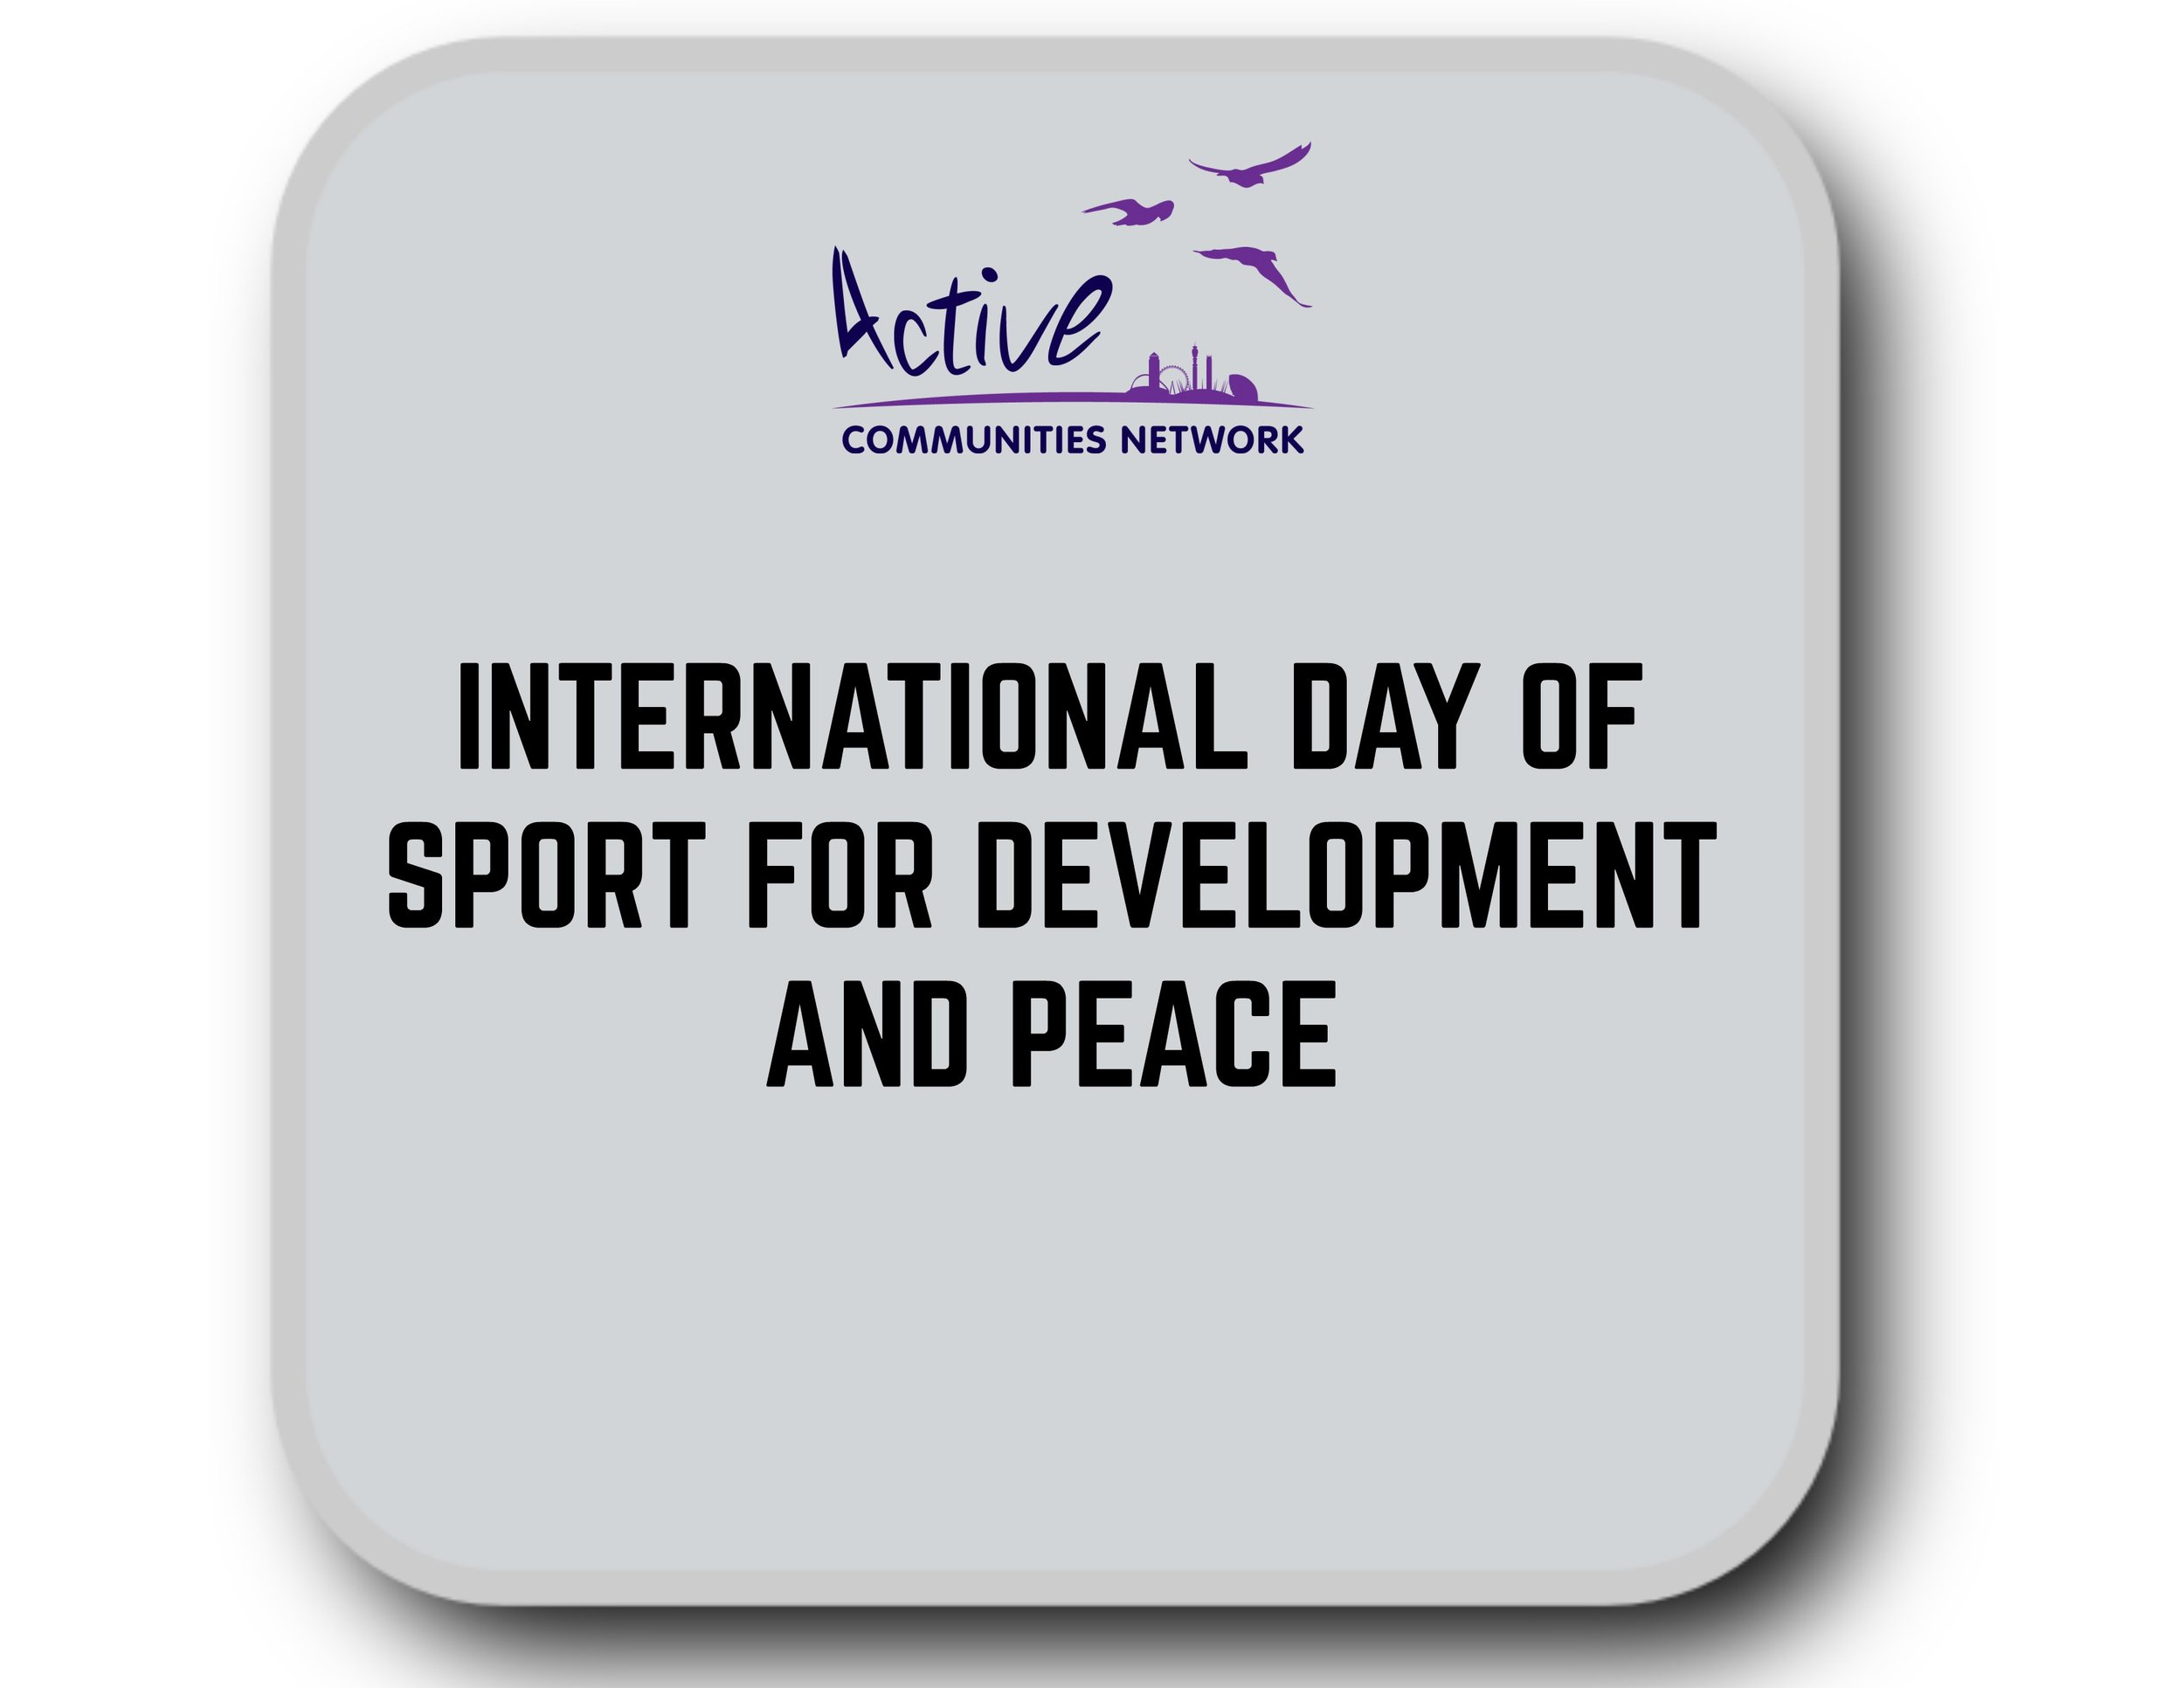 INTERNATIONAL DAY OF DEVELOPMENT.jpg